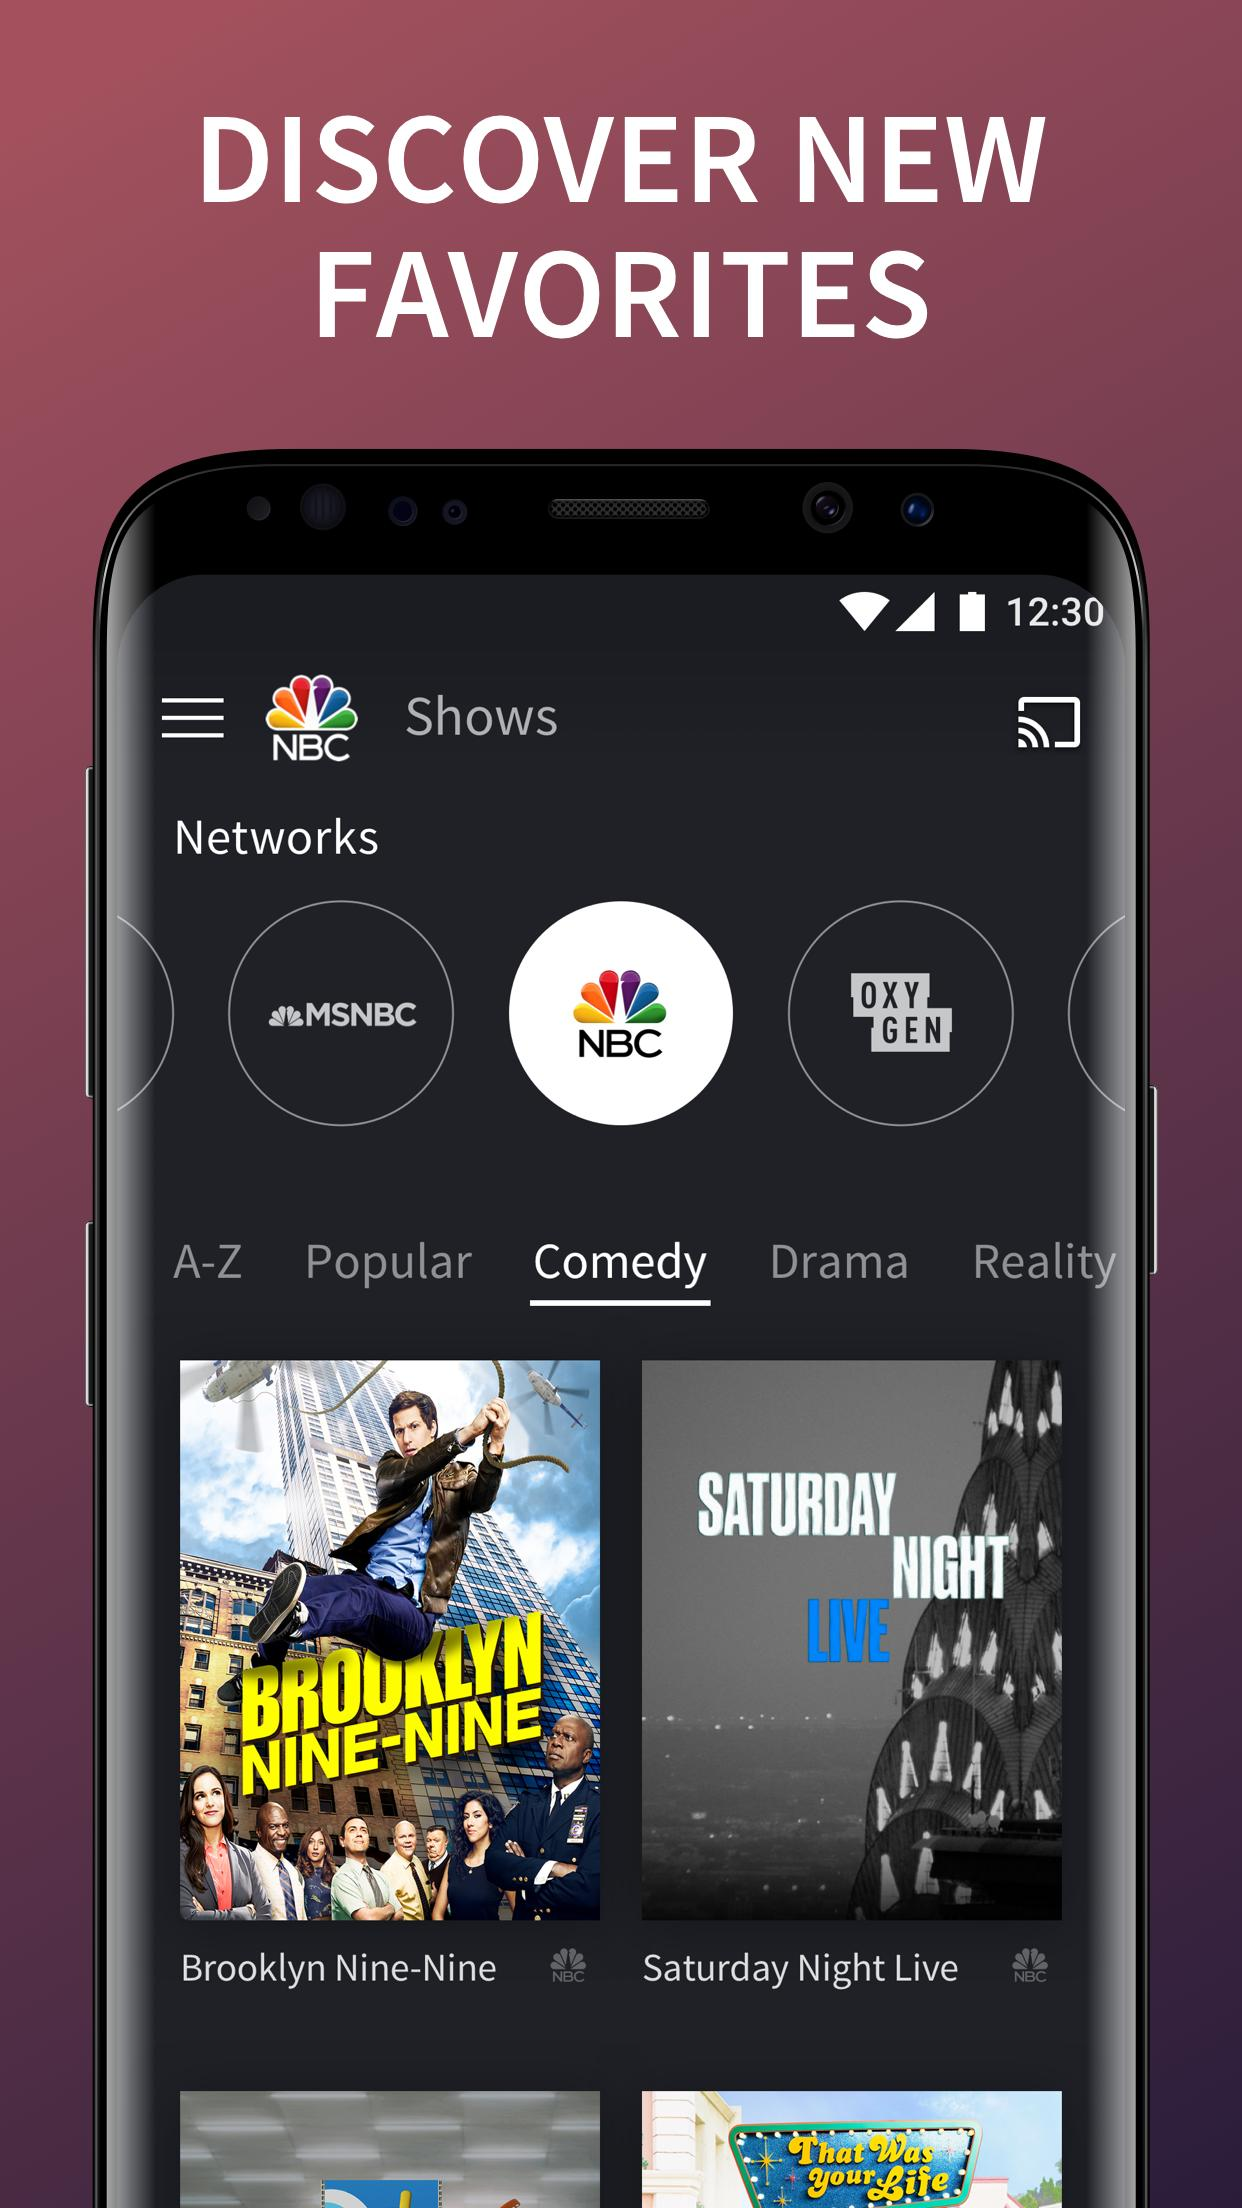 The NBC App - Stream Live TV and Episodes for Free 7.4.1 Screenshot 3